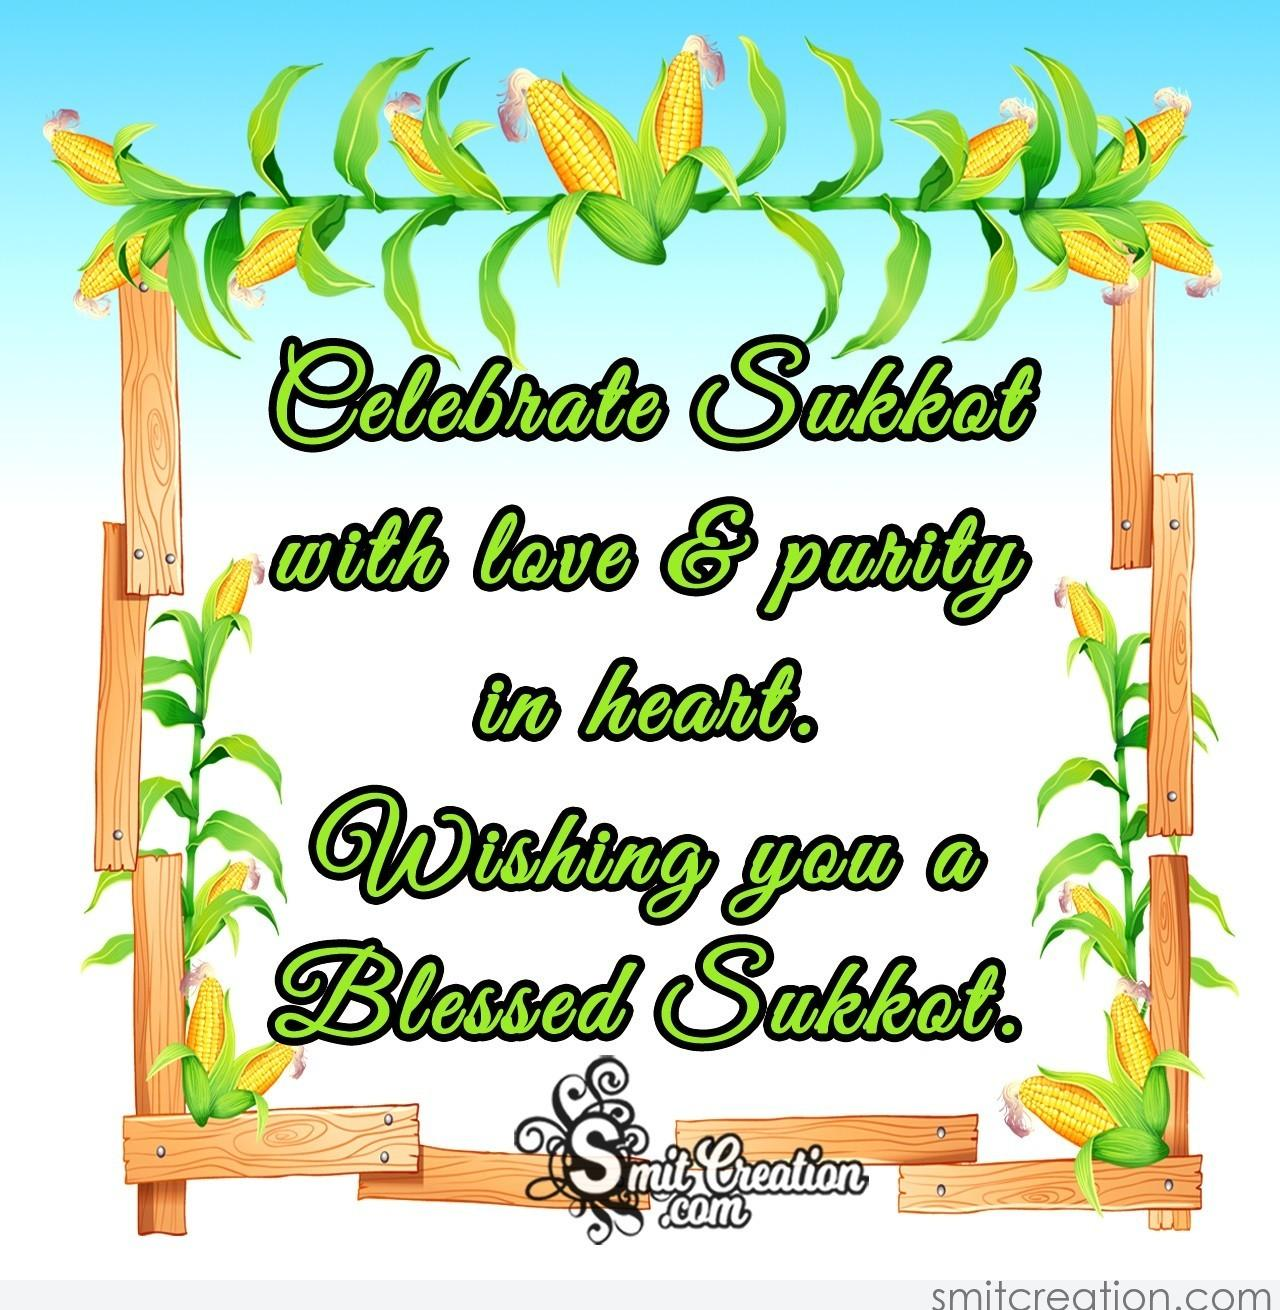 Sukkot greetings pictures and graphics smitcreation celebrate sukkot with love purity in heart wishing you a blessed sukkot m4hsunfo